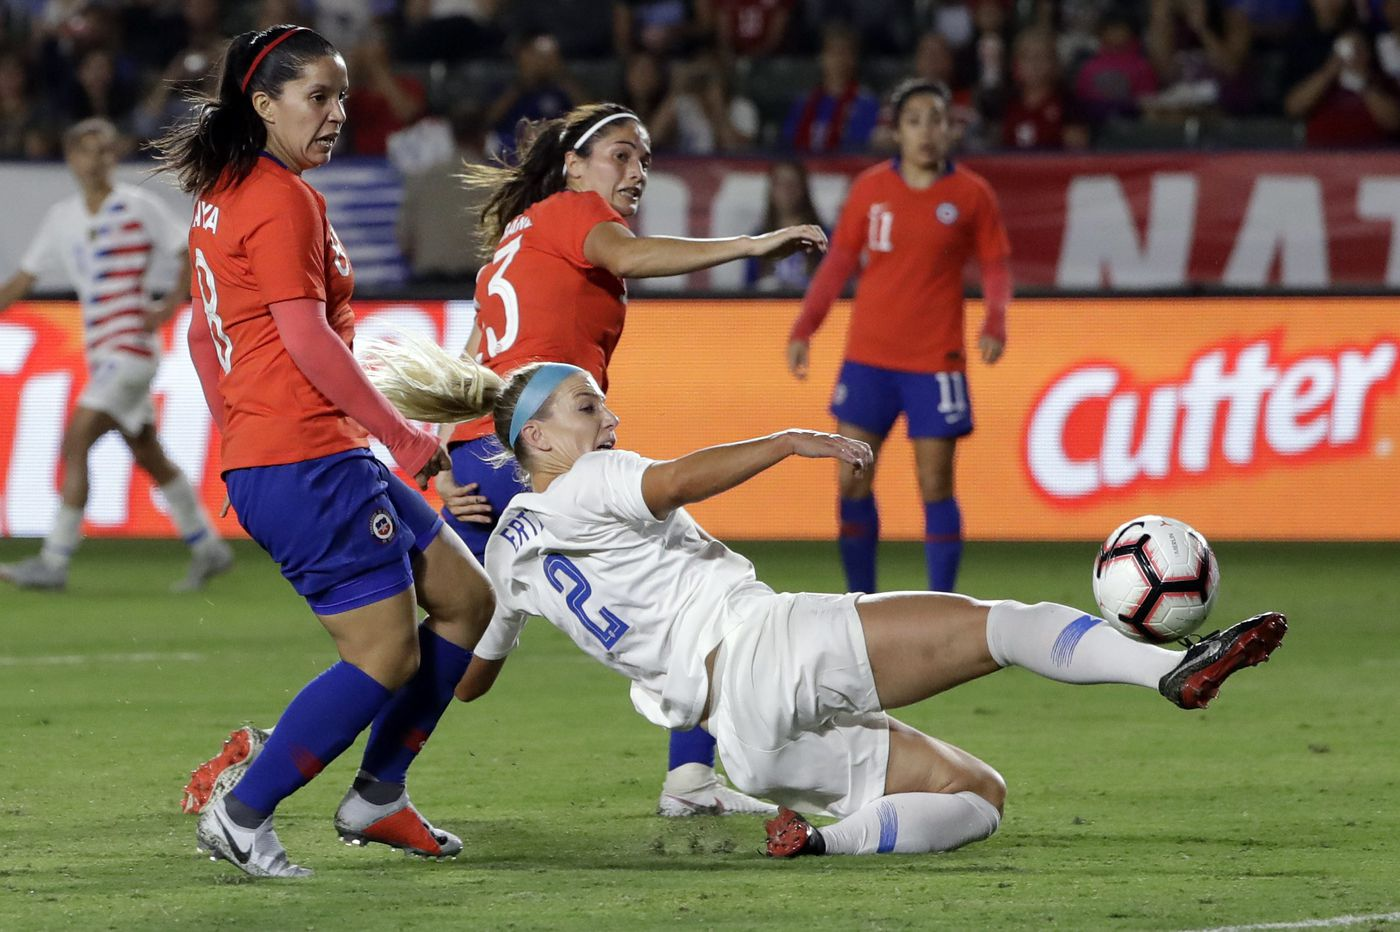 ef0b630132e Julie Ertz ready for loaded U.S. women's soccer team to start World Cup  qualifying